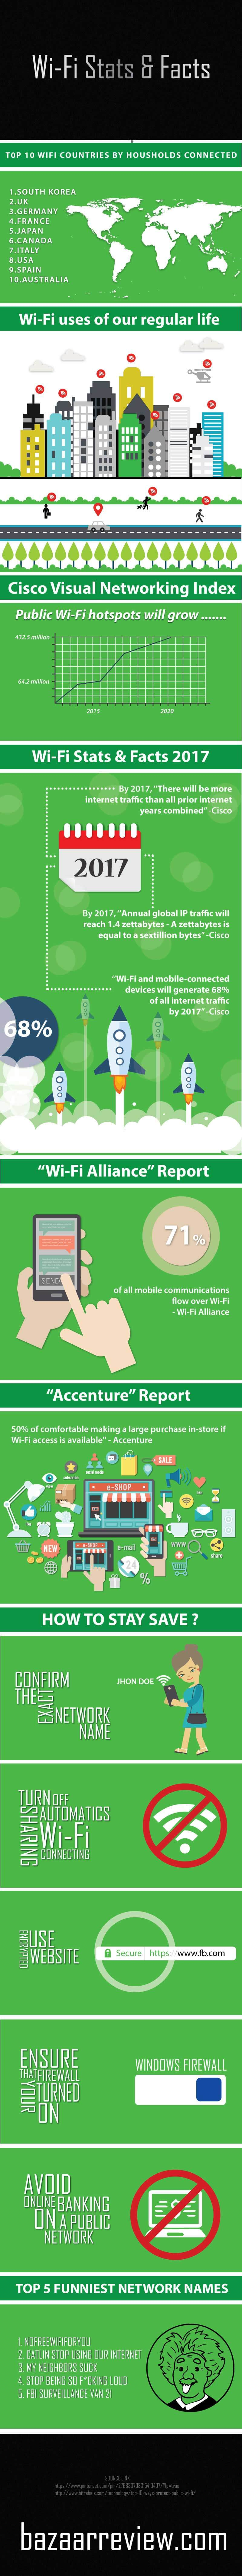 The Wi-Fi Universe: Stats and Facts - Infographic